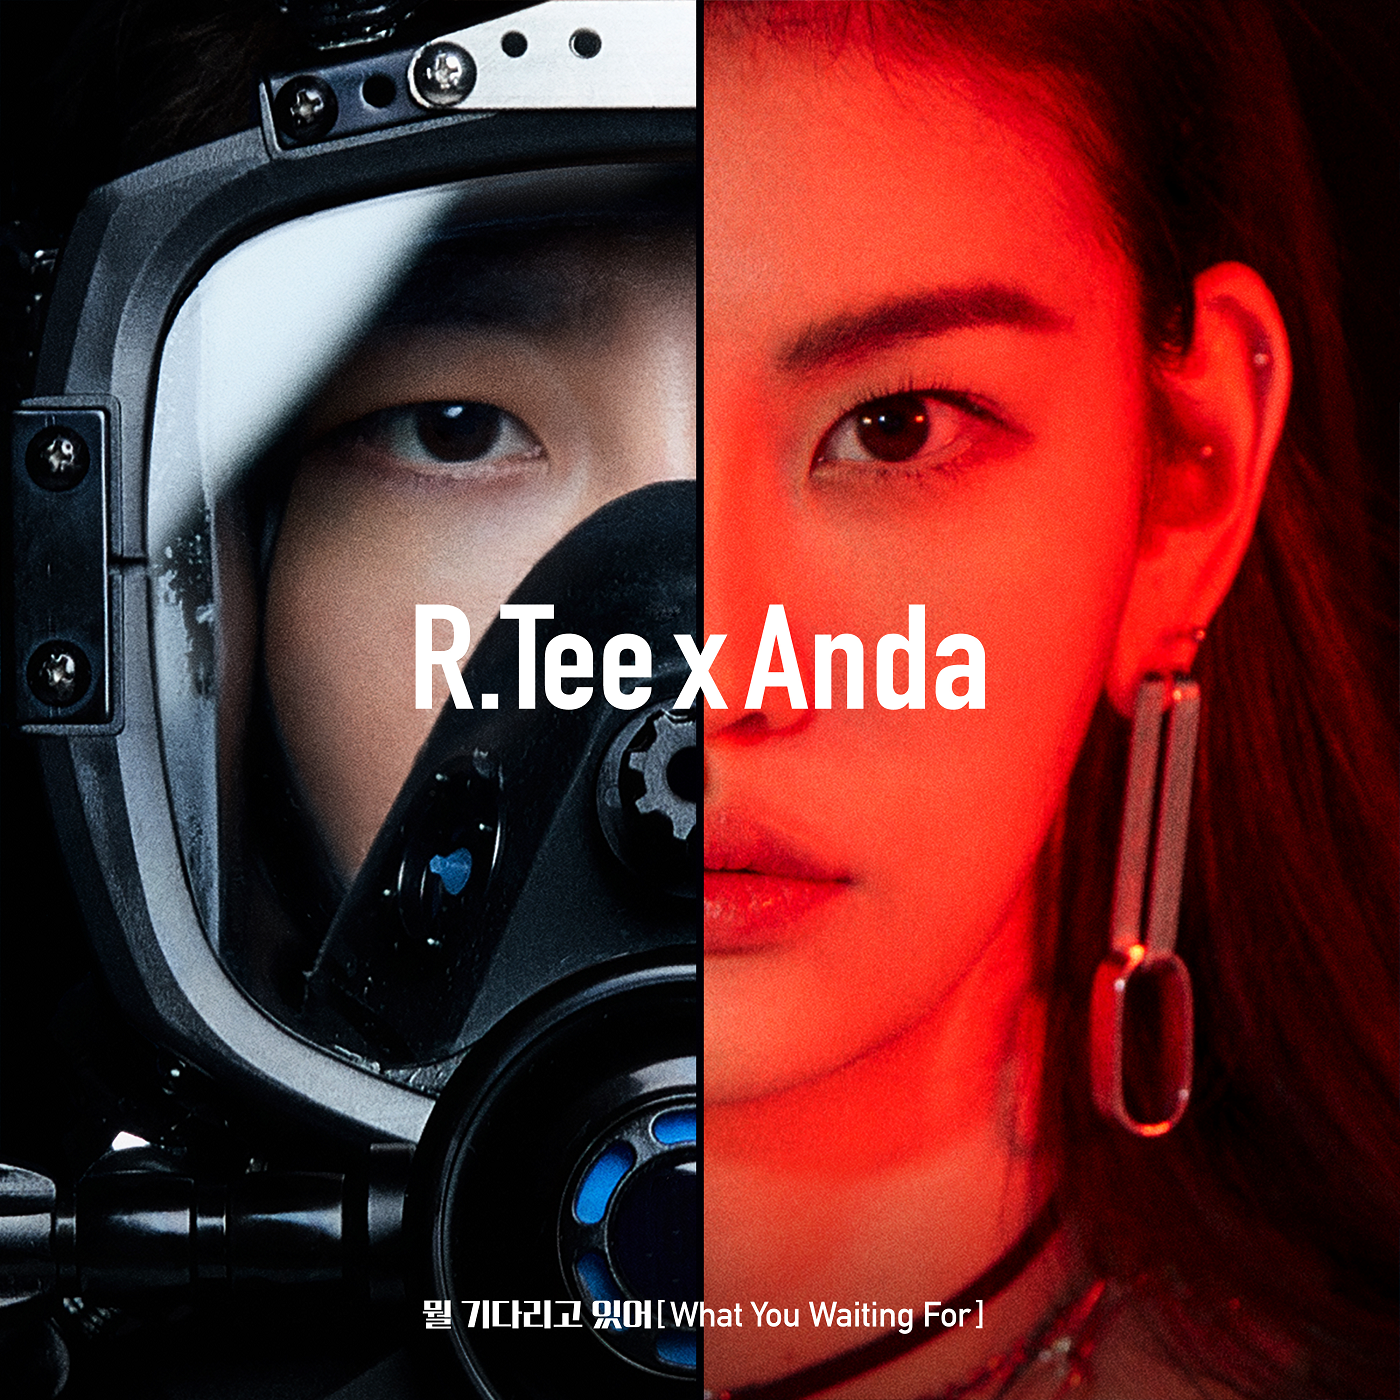 Awesome Anda Kpop Wiki wallpapers to download for free greenvirals